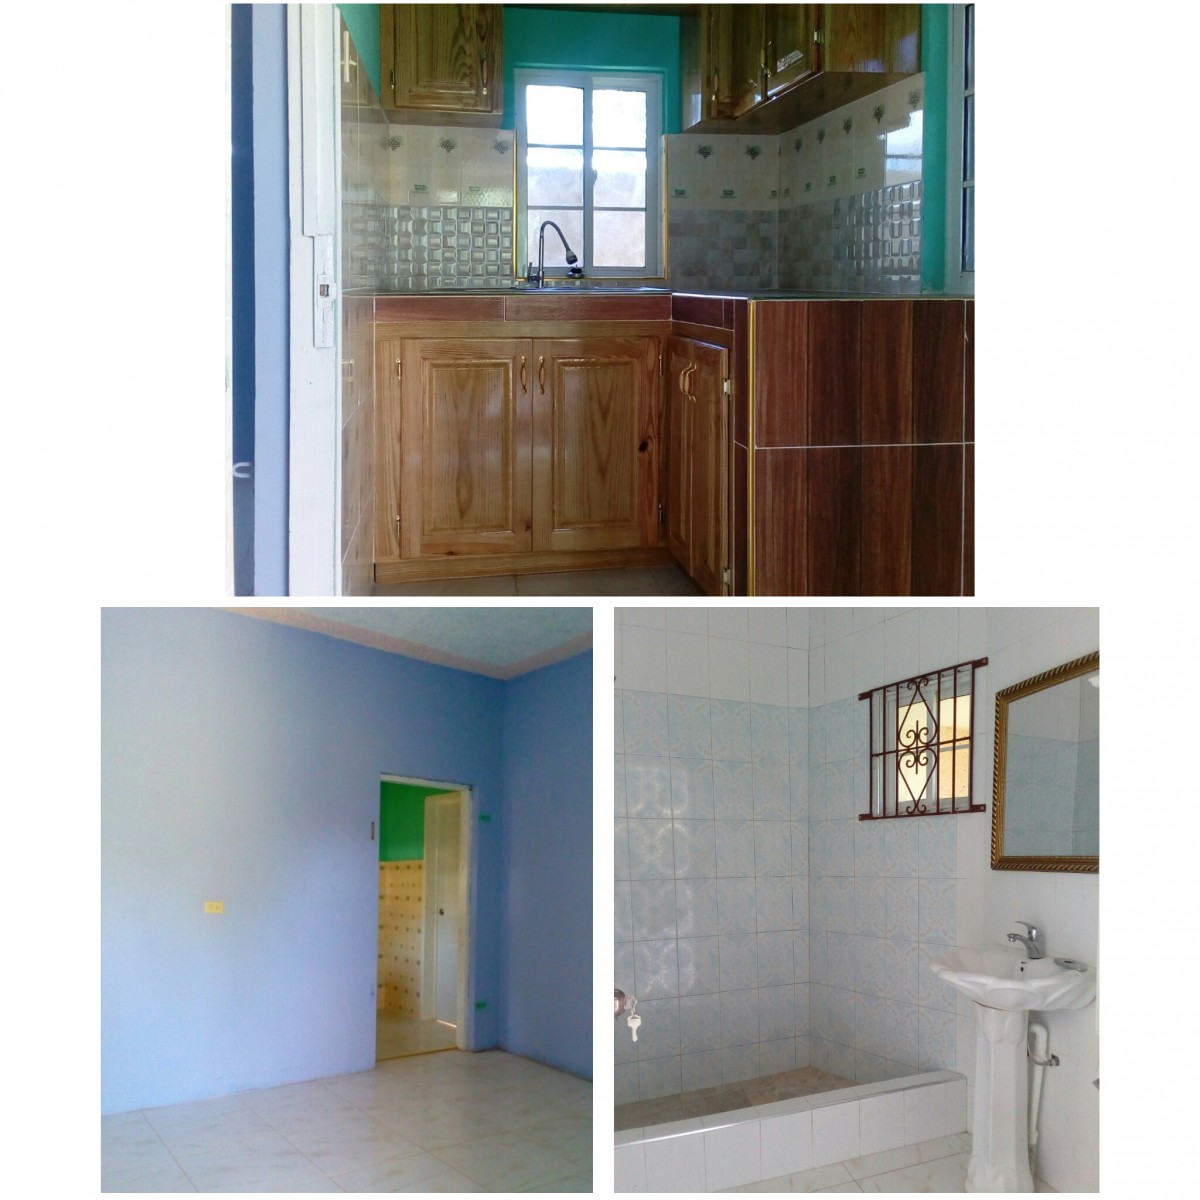 1 Bedroom Studio For Rent: 1 Bedroom Apartment For Rent In Linstead St Catherine